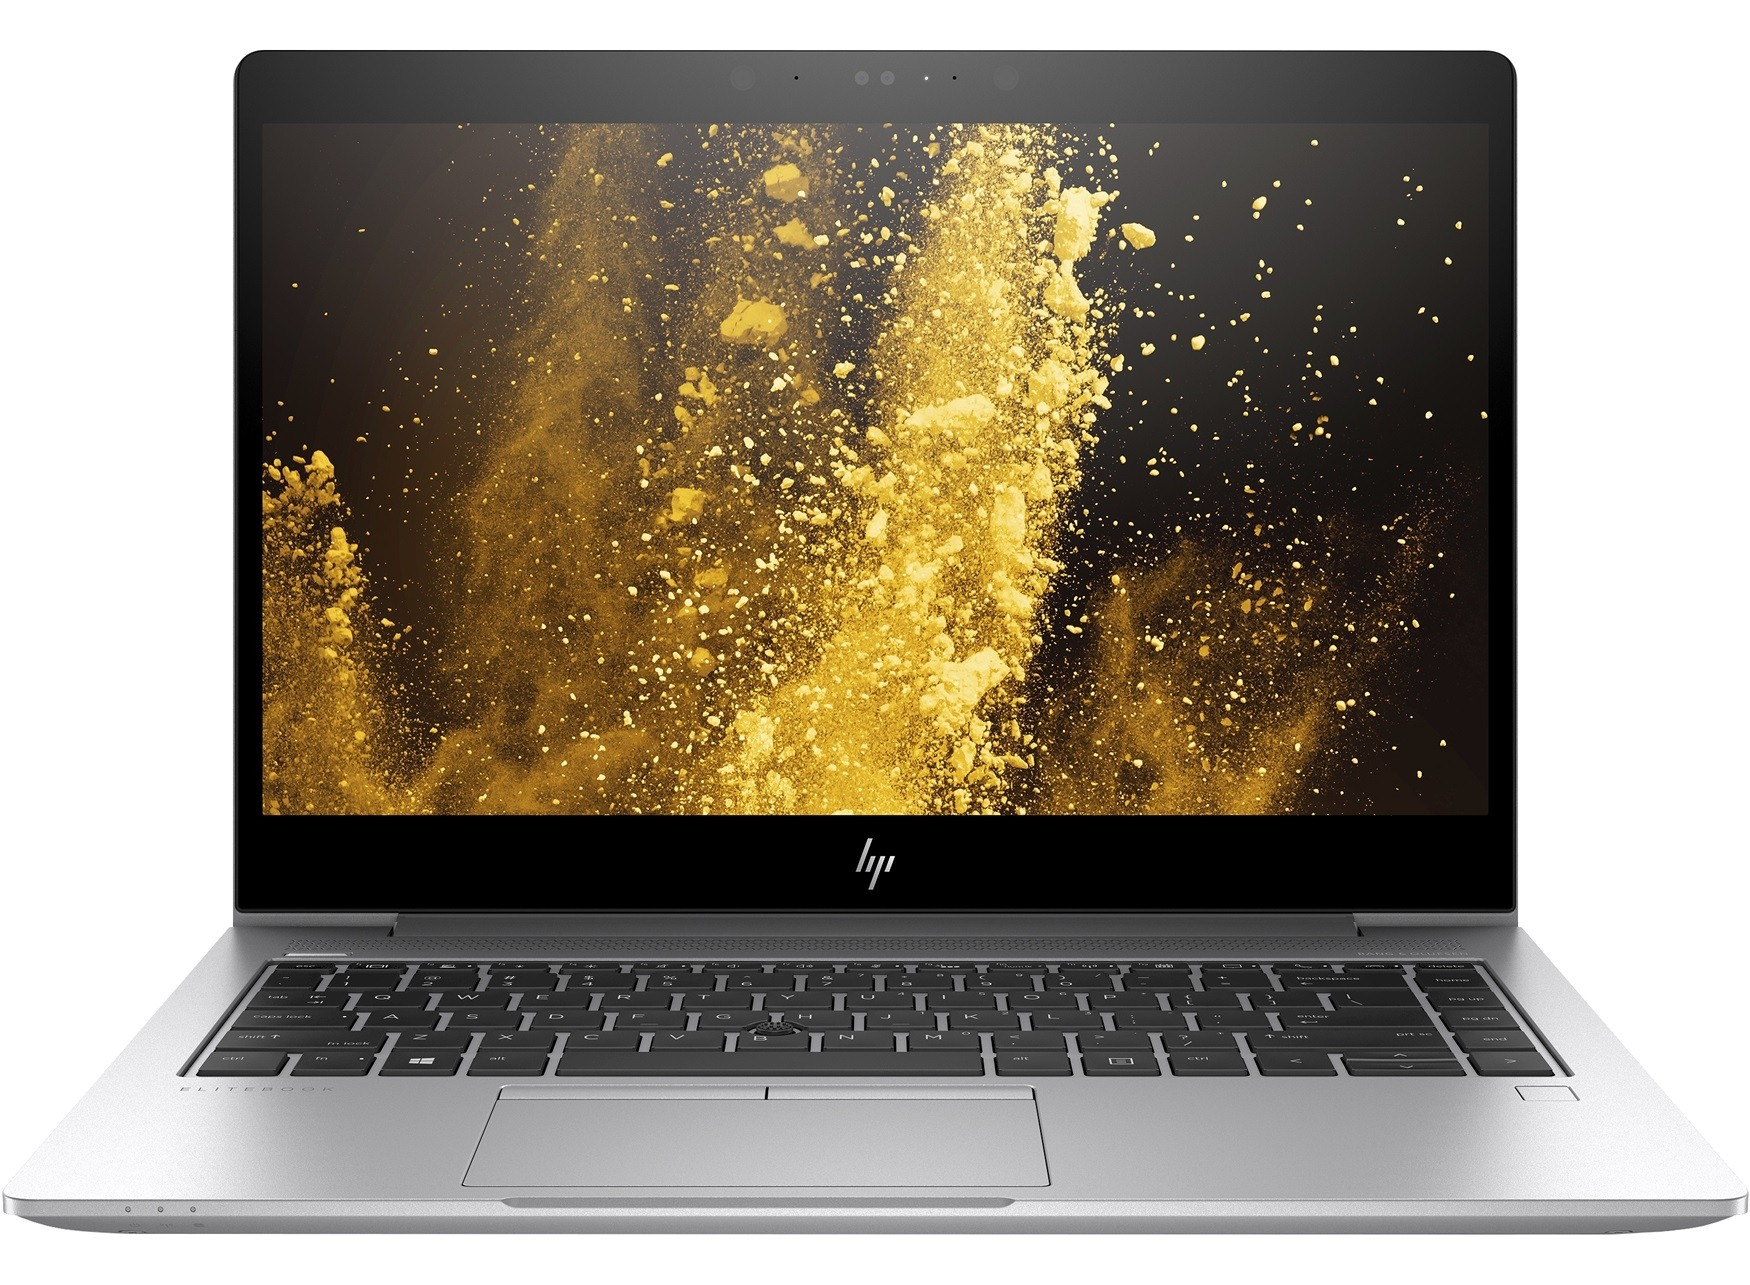 HP Elitebook 840 G5 3TU06PA